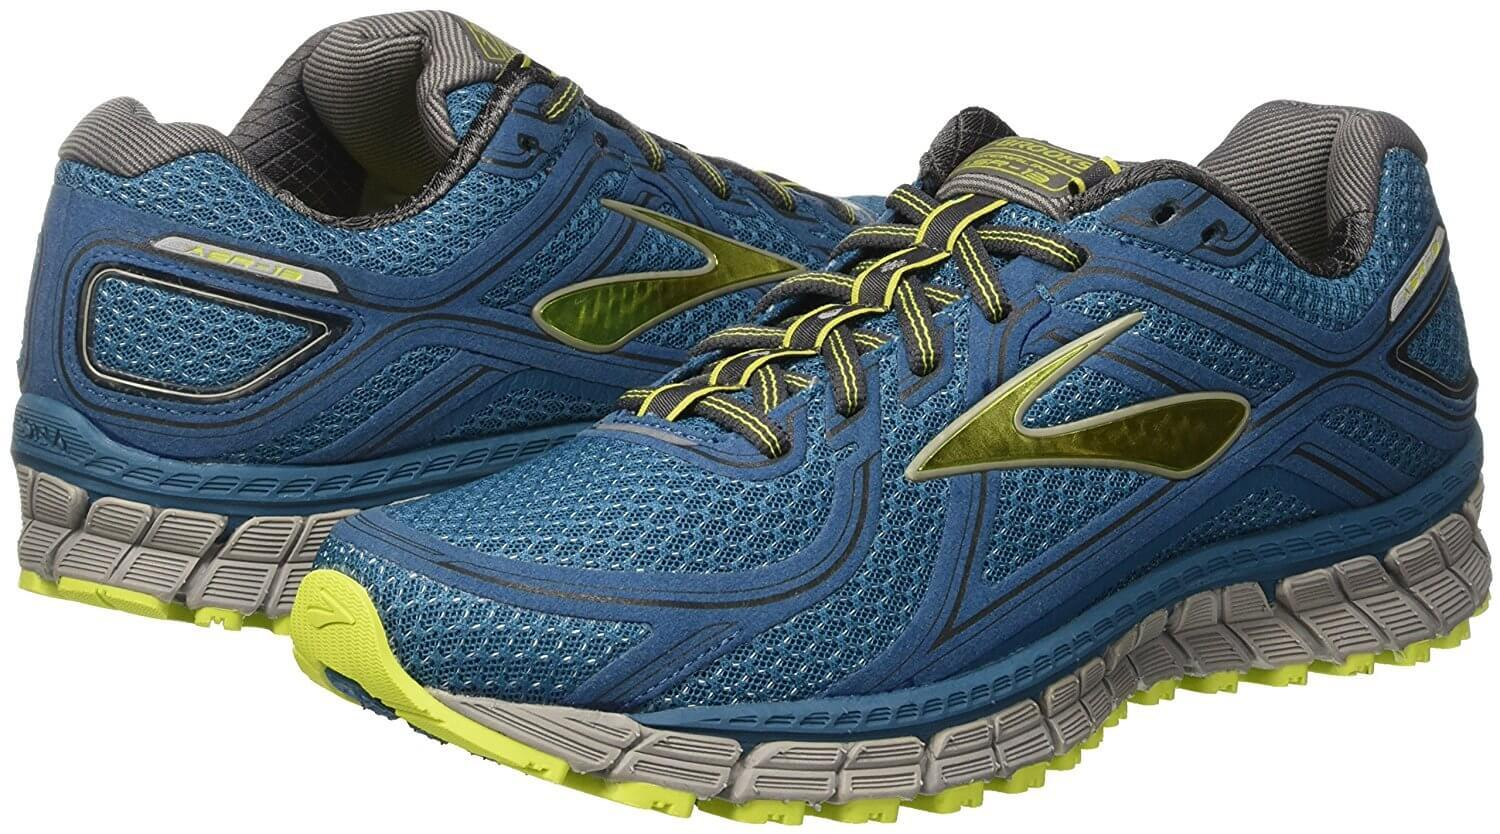 44293db9268 ... The Brooks Adrenaline ASR 13 is an attractive trail shoe